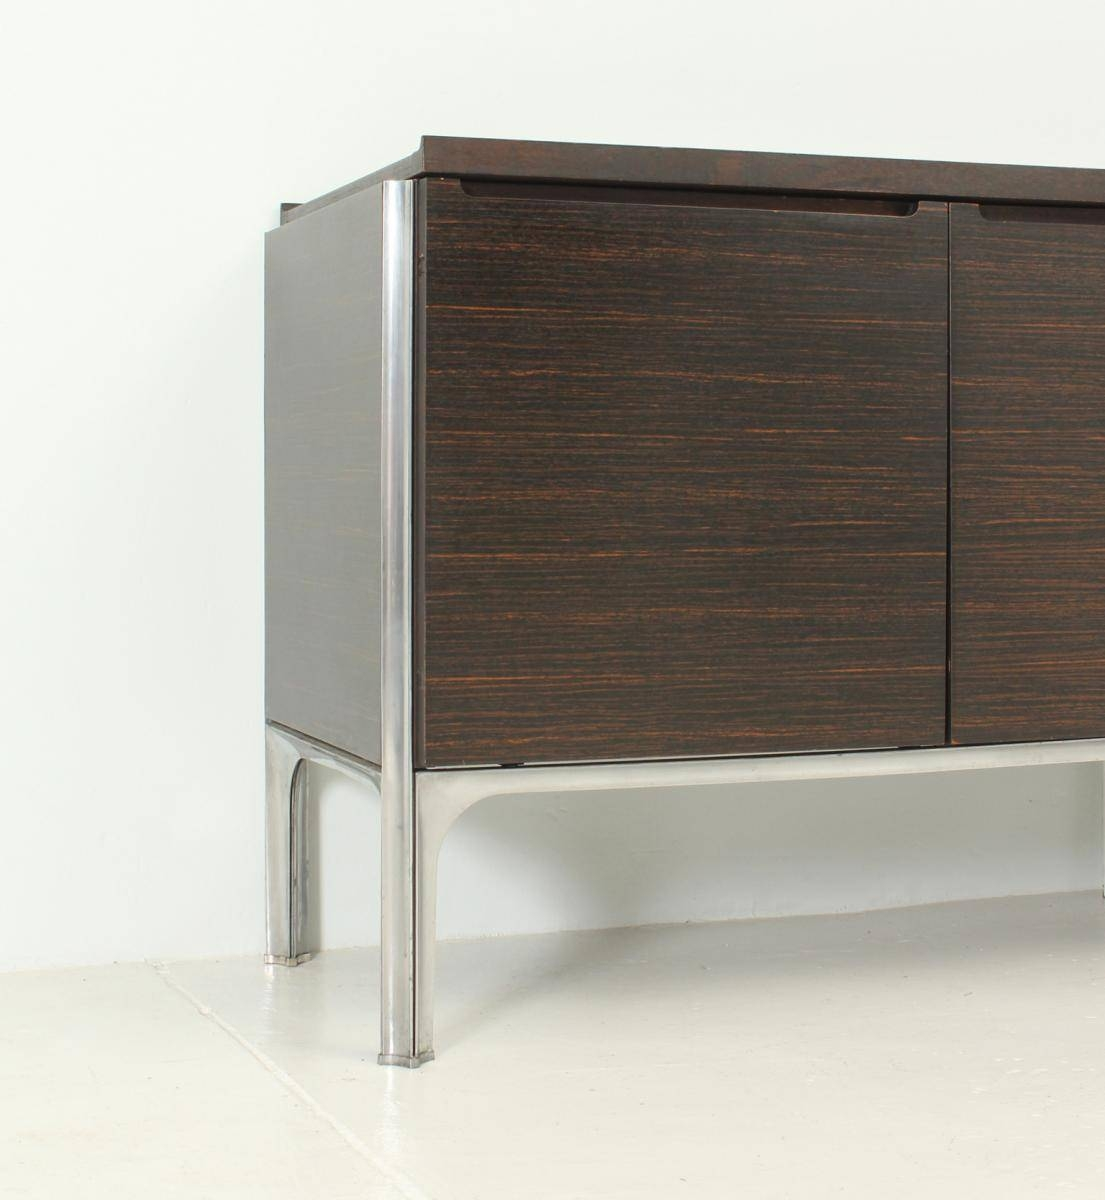 Macassar Ebony Wood Sideboardraymond Loewy For Df 2000 For For Most Recently Released Affinity Sideboards (View 11 of 15)